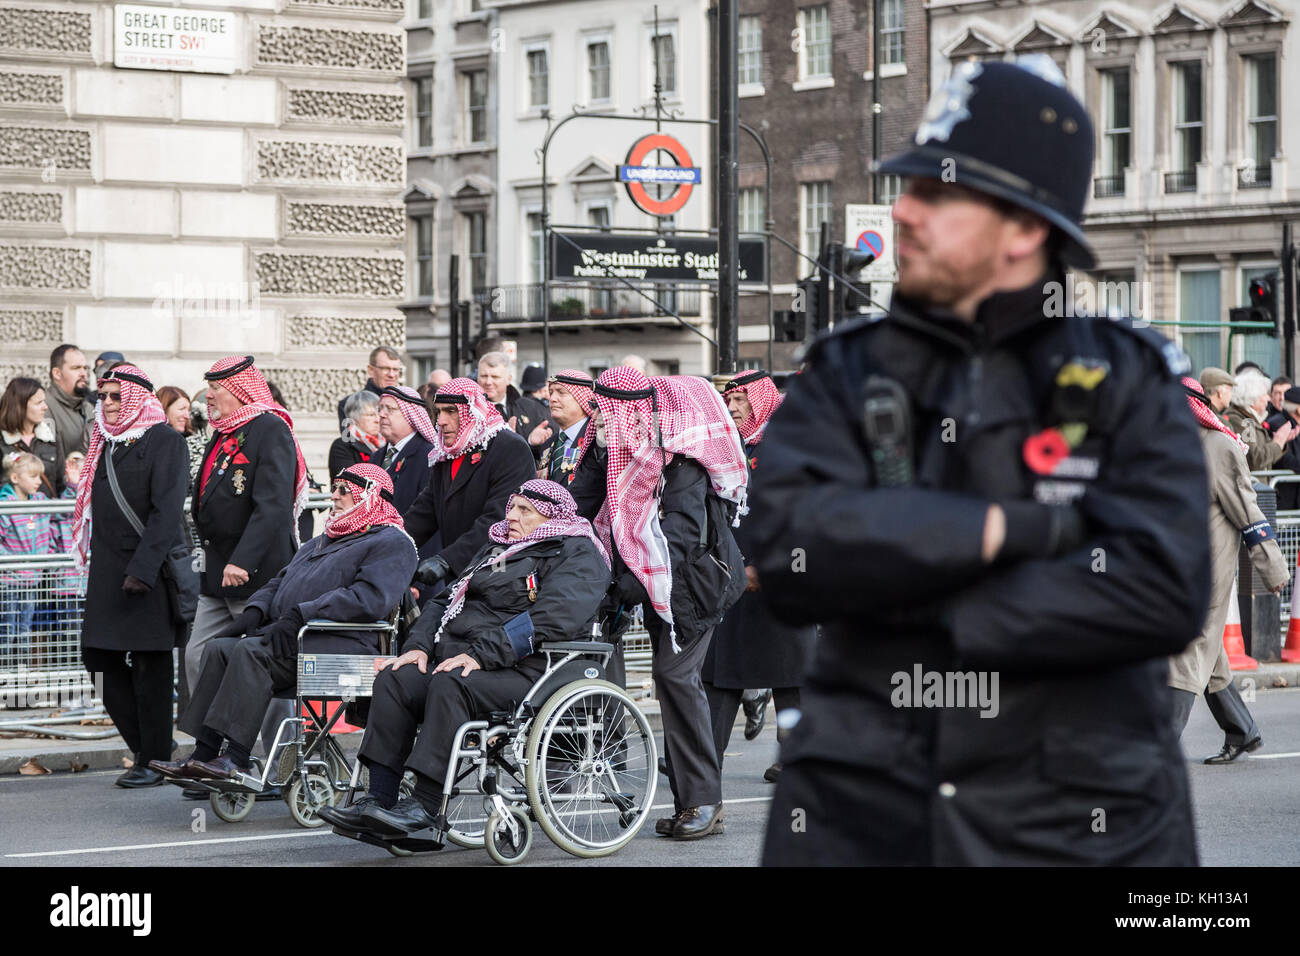 London, UK. 12th Nov, 2017. Members and veterans of the armed forces attend the annual Remembrance Sunday service - Stock Image